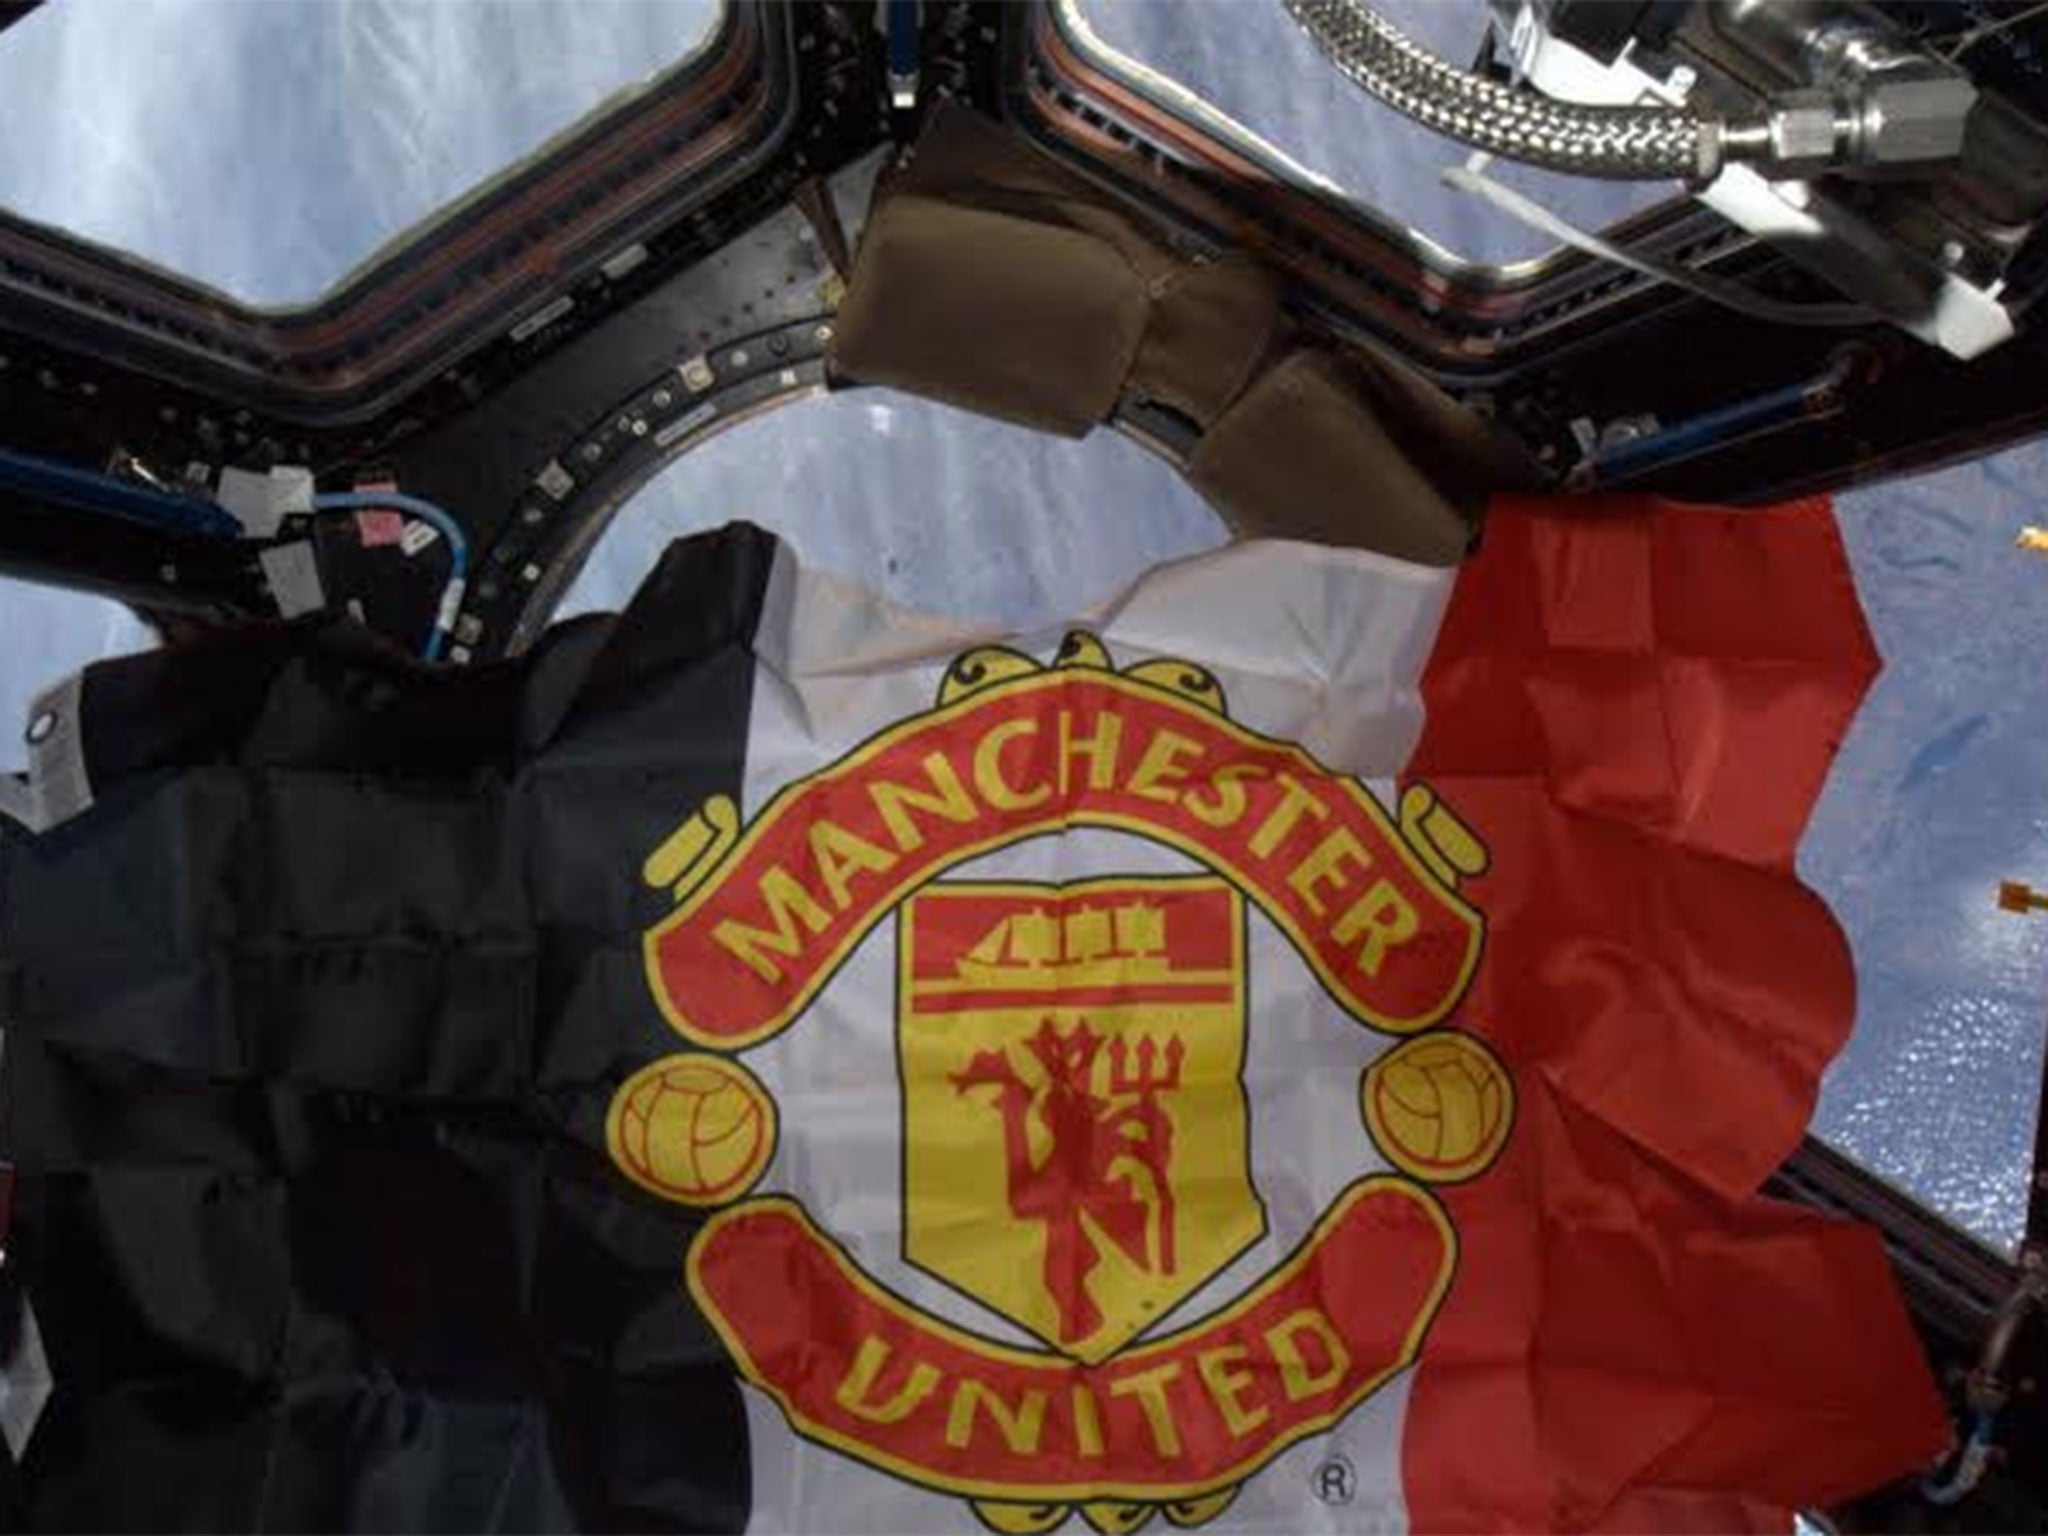 The Manchester United Flag Has Been Flying From The International Space Station The Independent The Independent